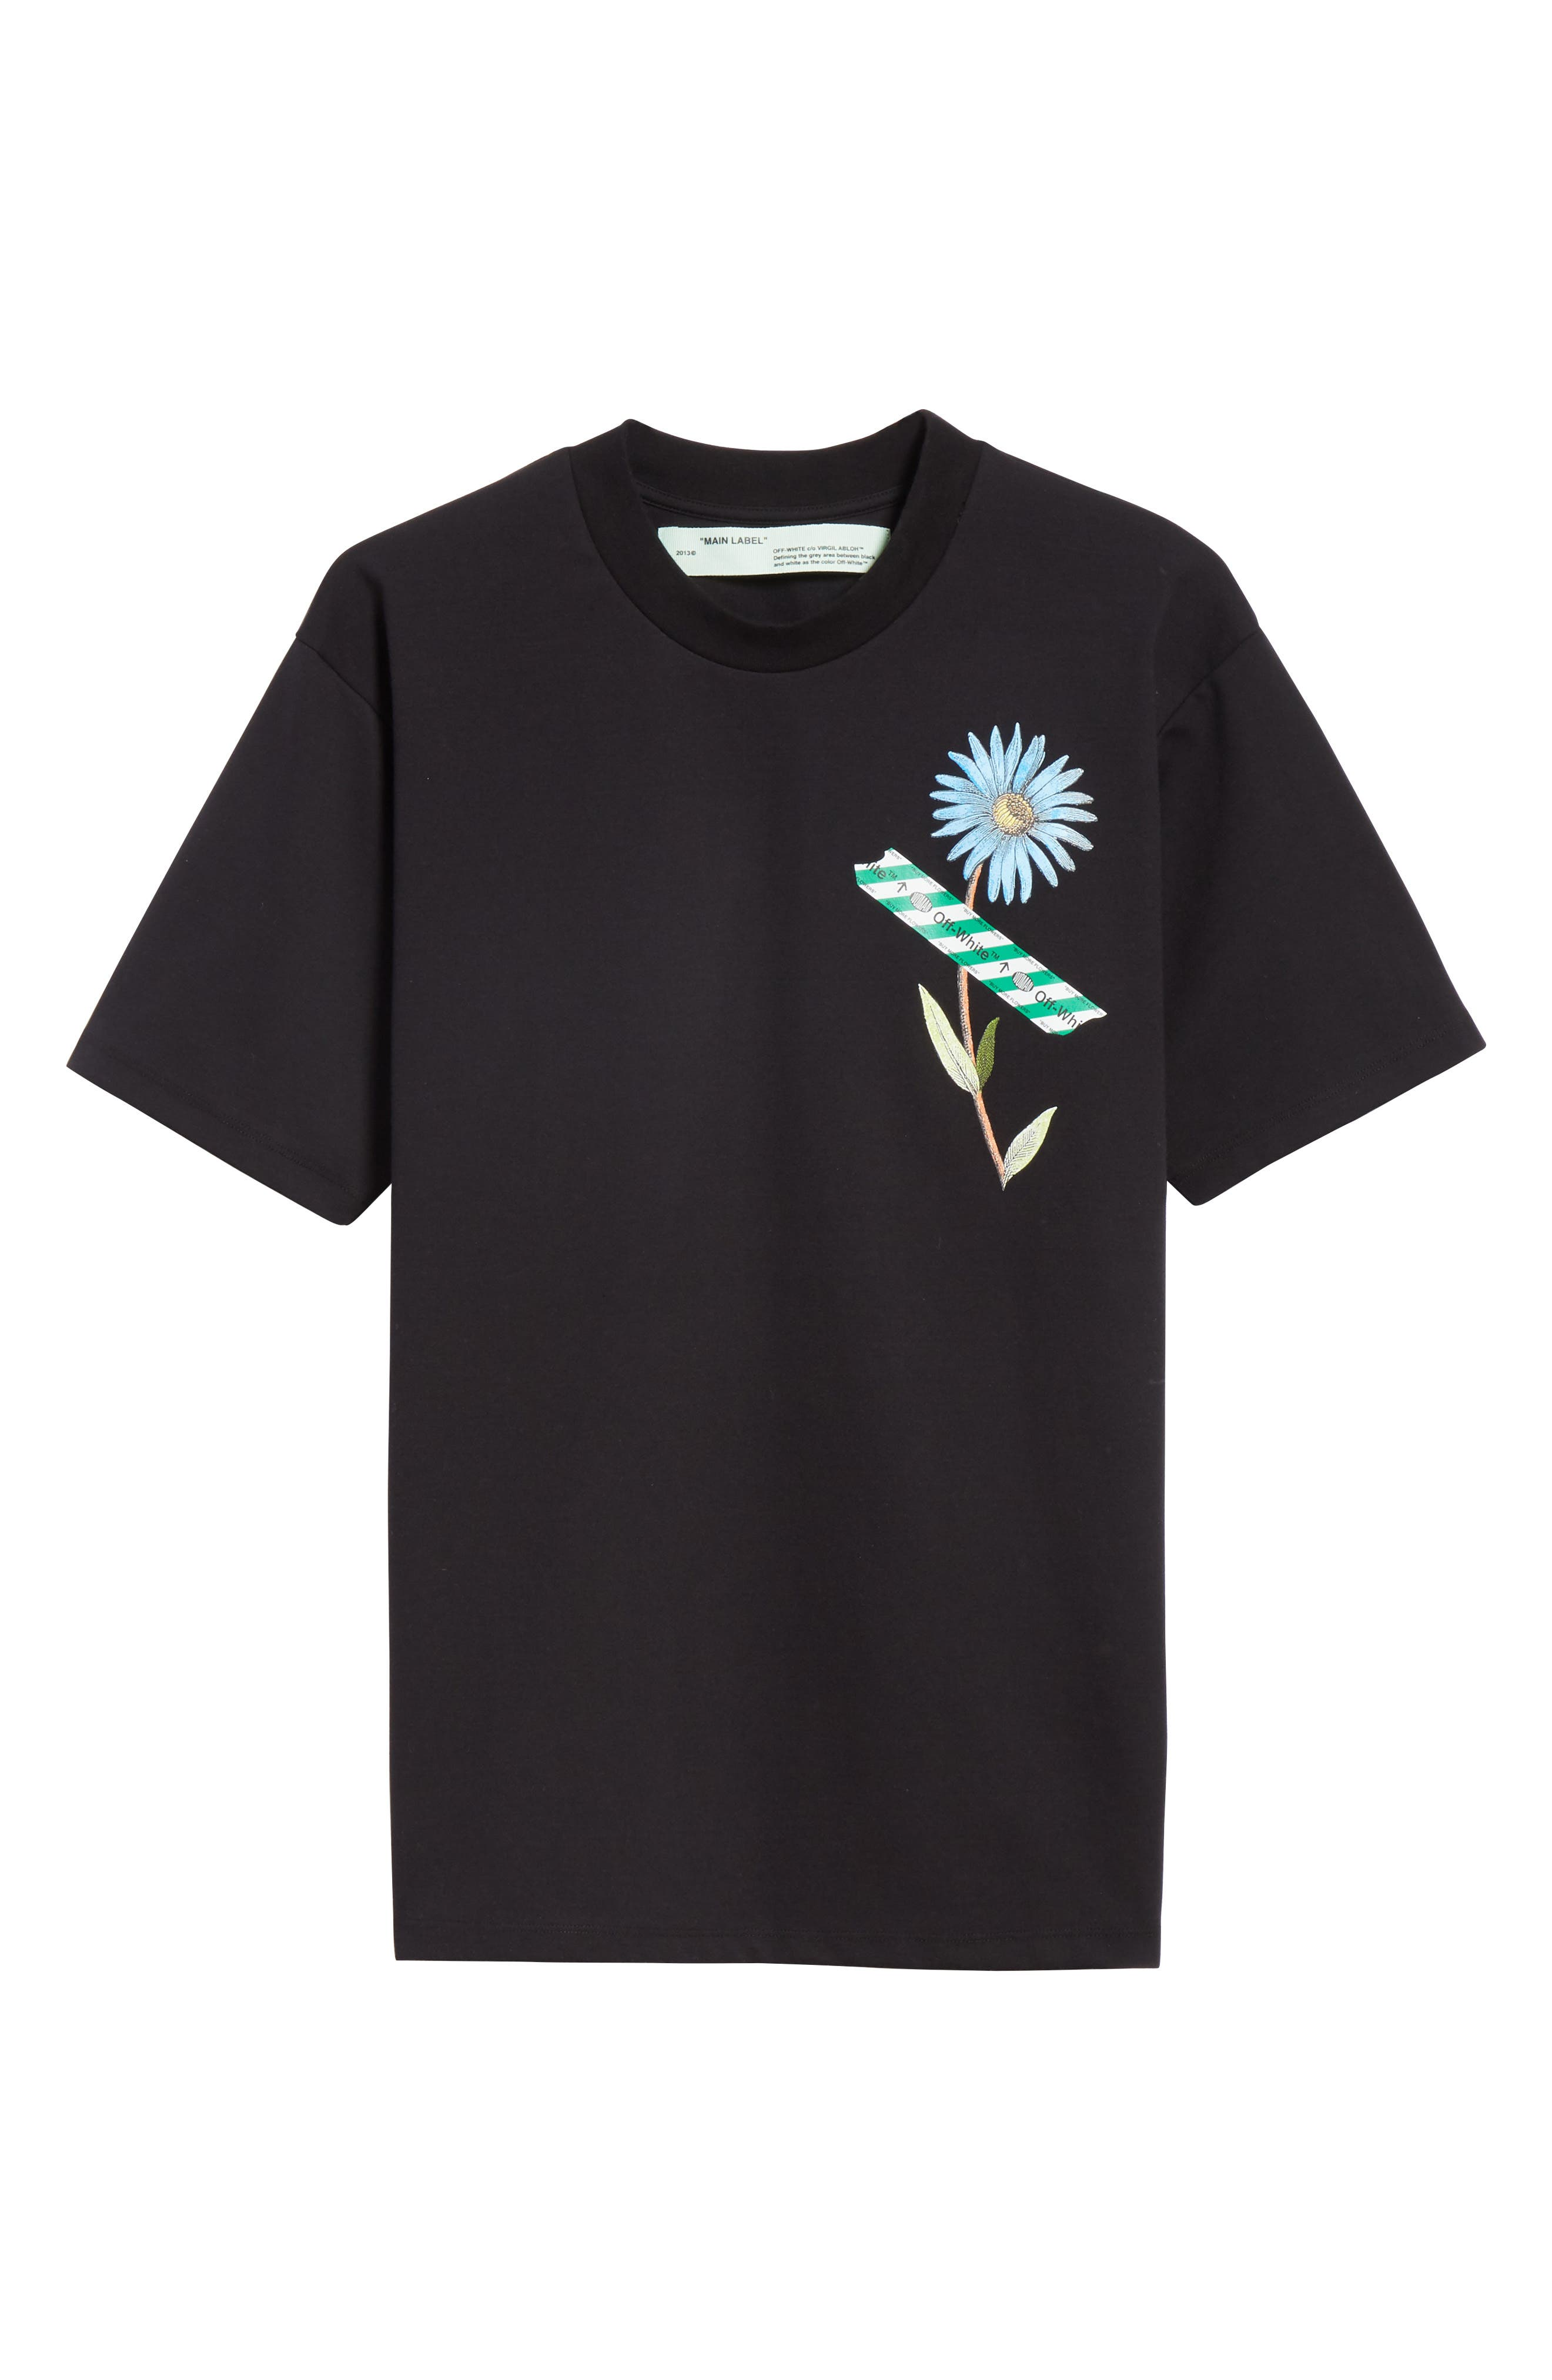 Flower Shop Tee,                             Alternate thumbnail 6, color,                             001